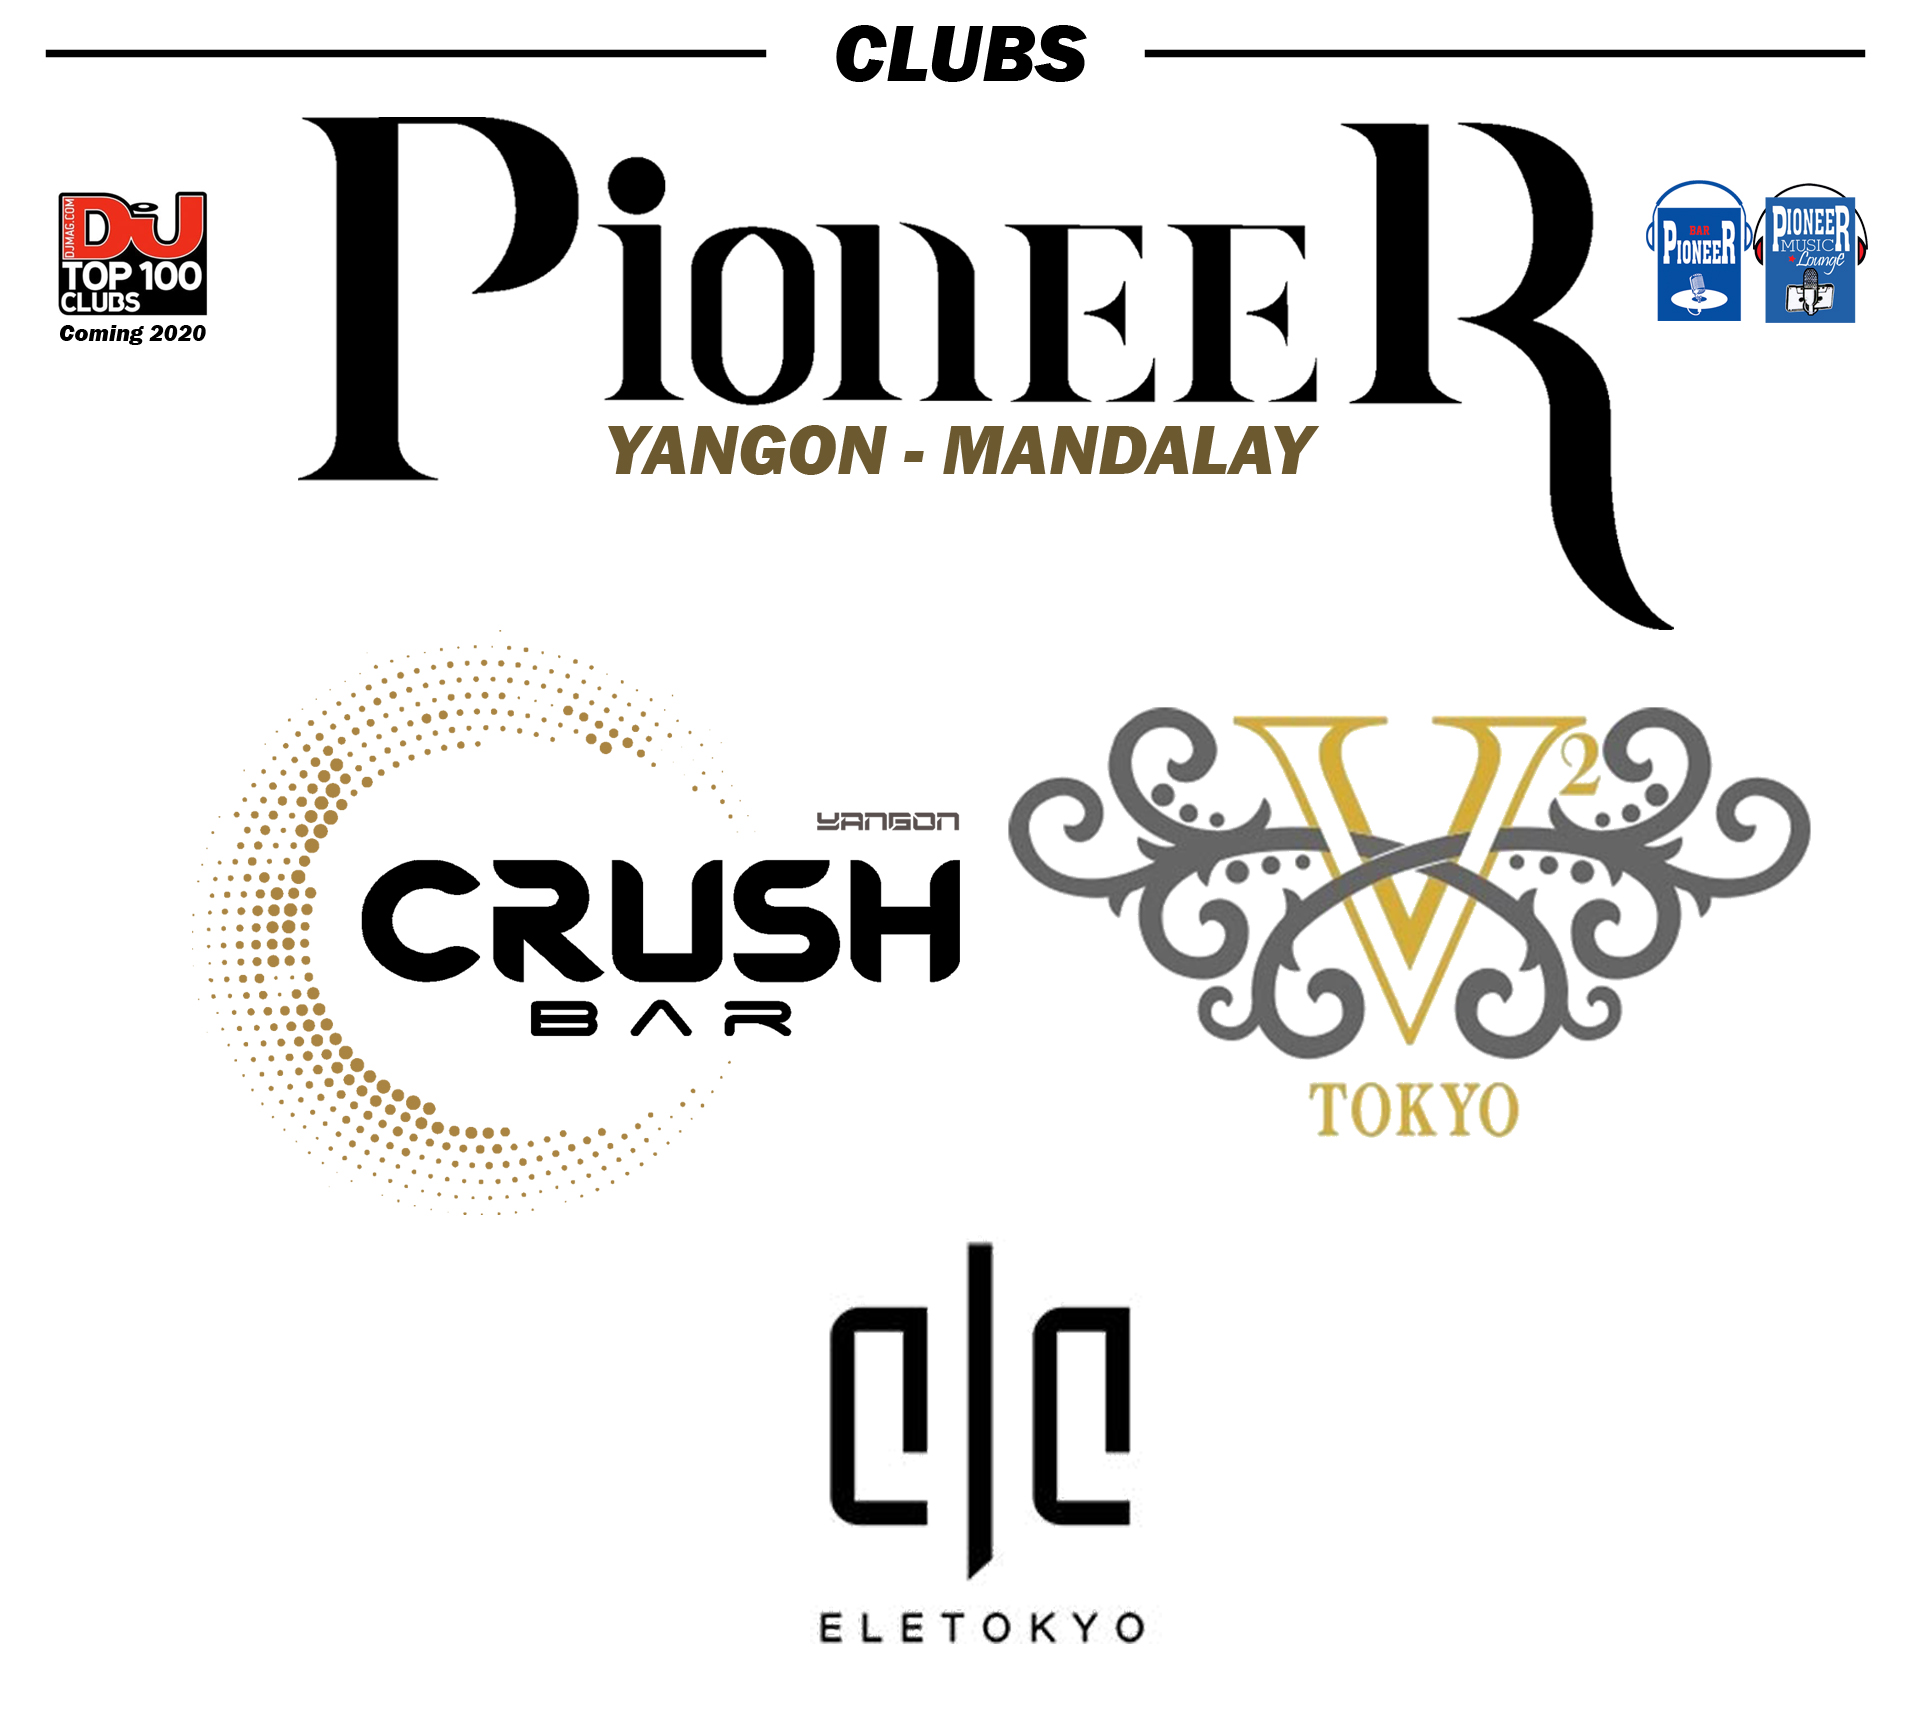 Brand Names Clubs Unitedevents